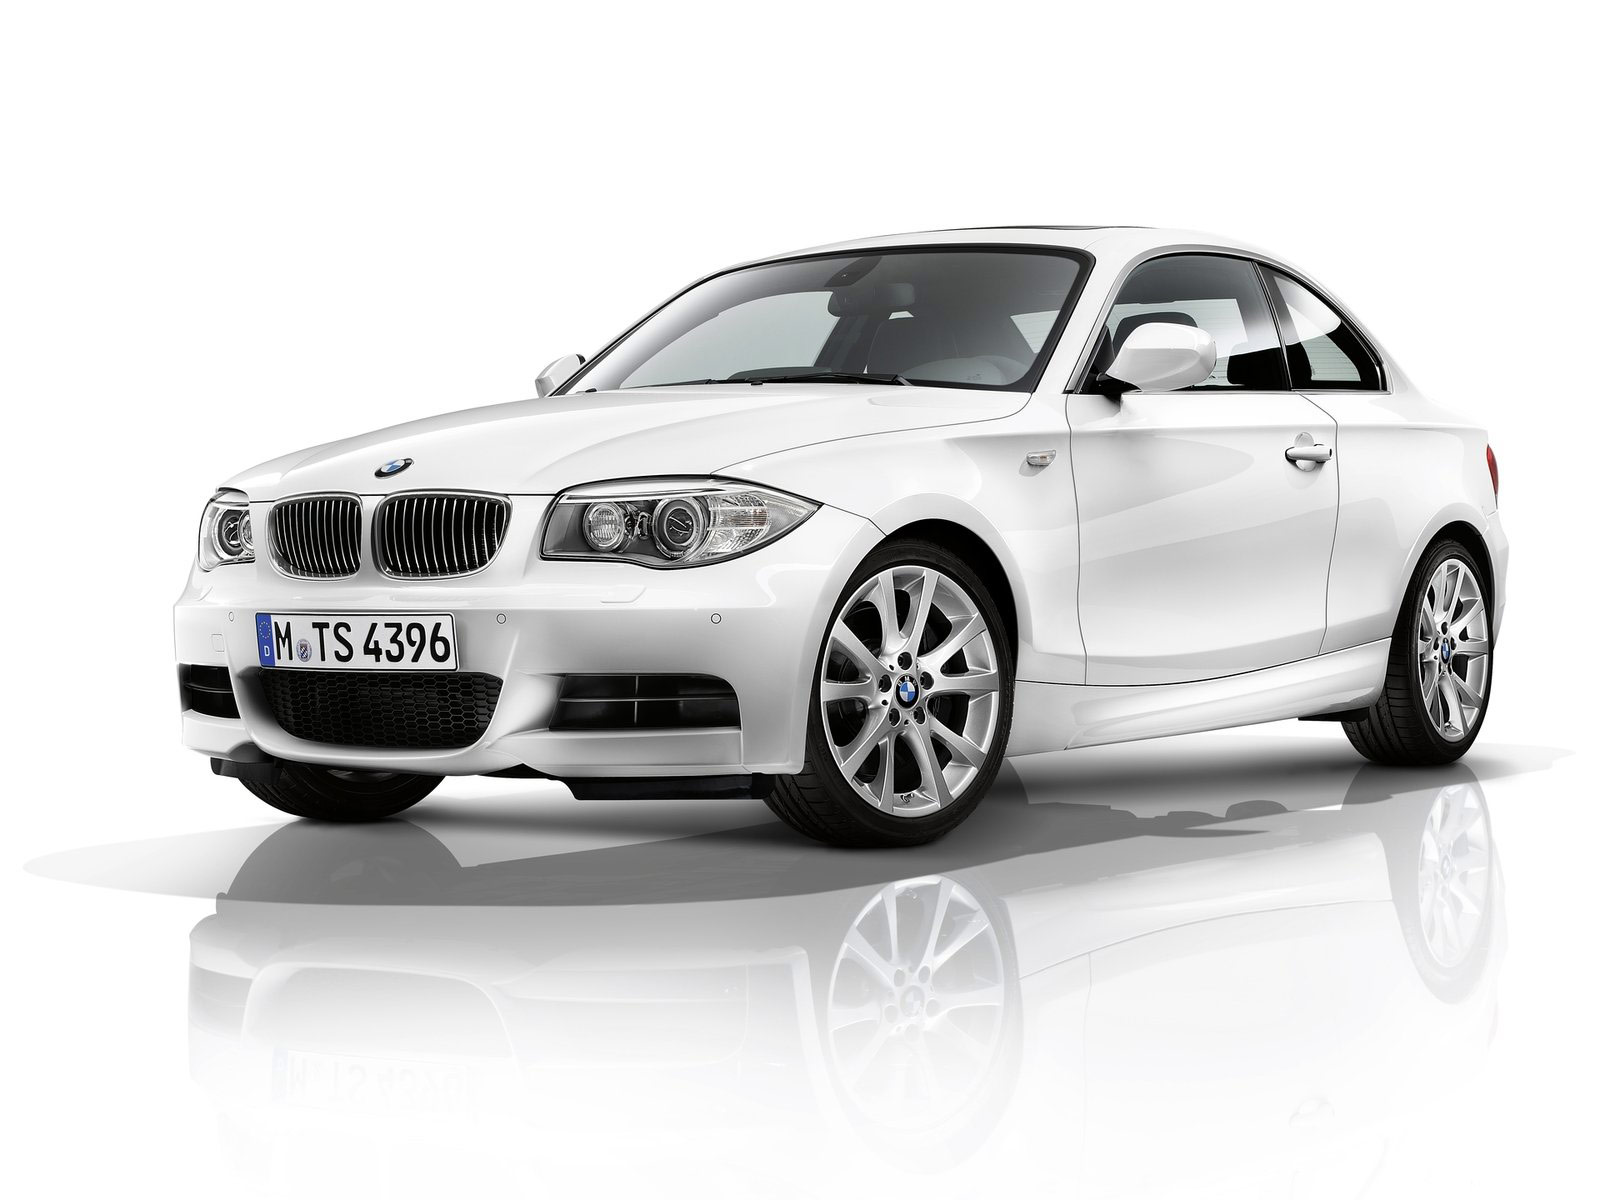 BMW 1 series 135is 2012 photo - 7